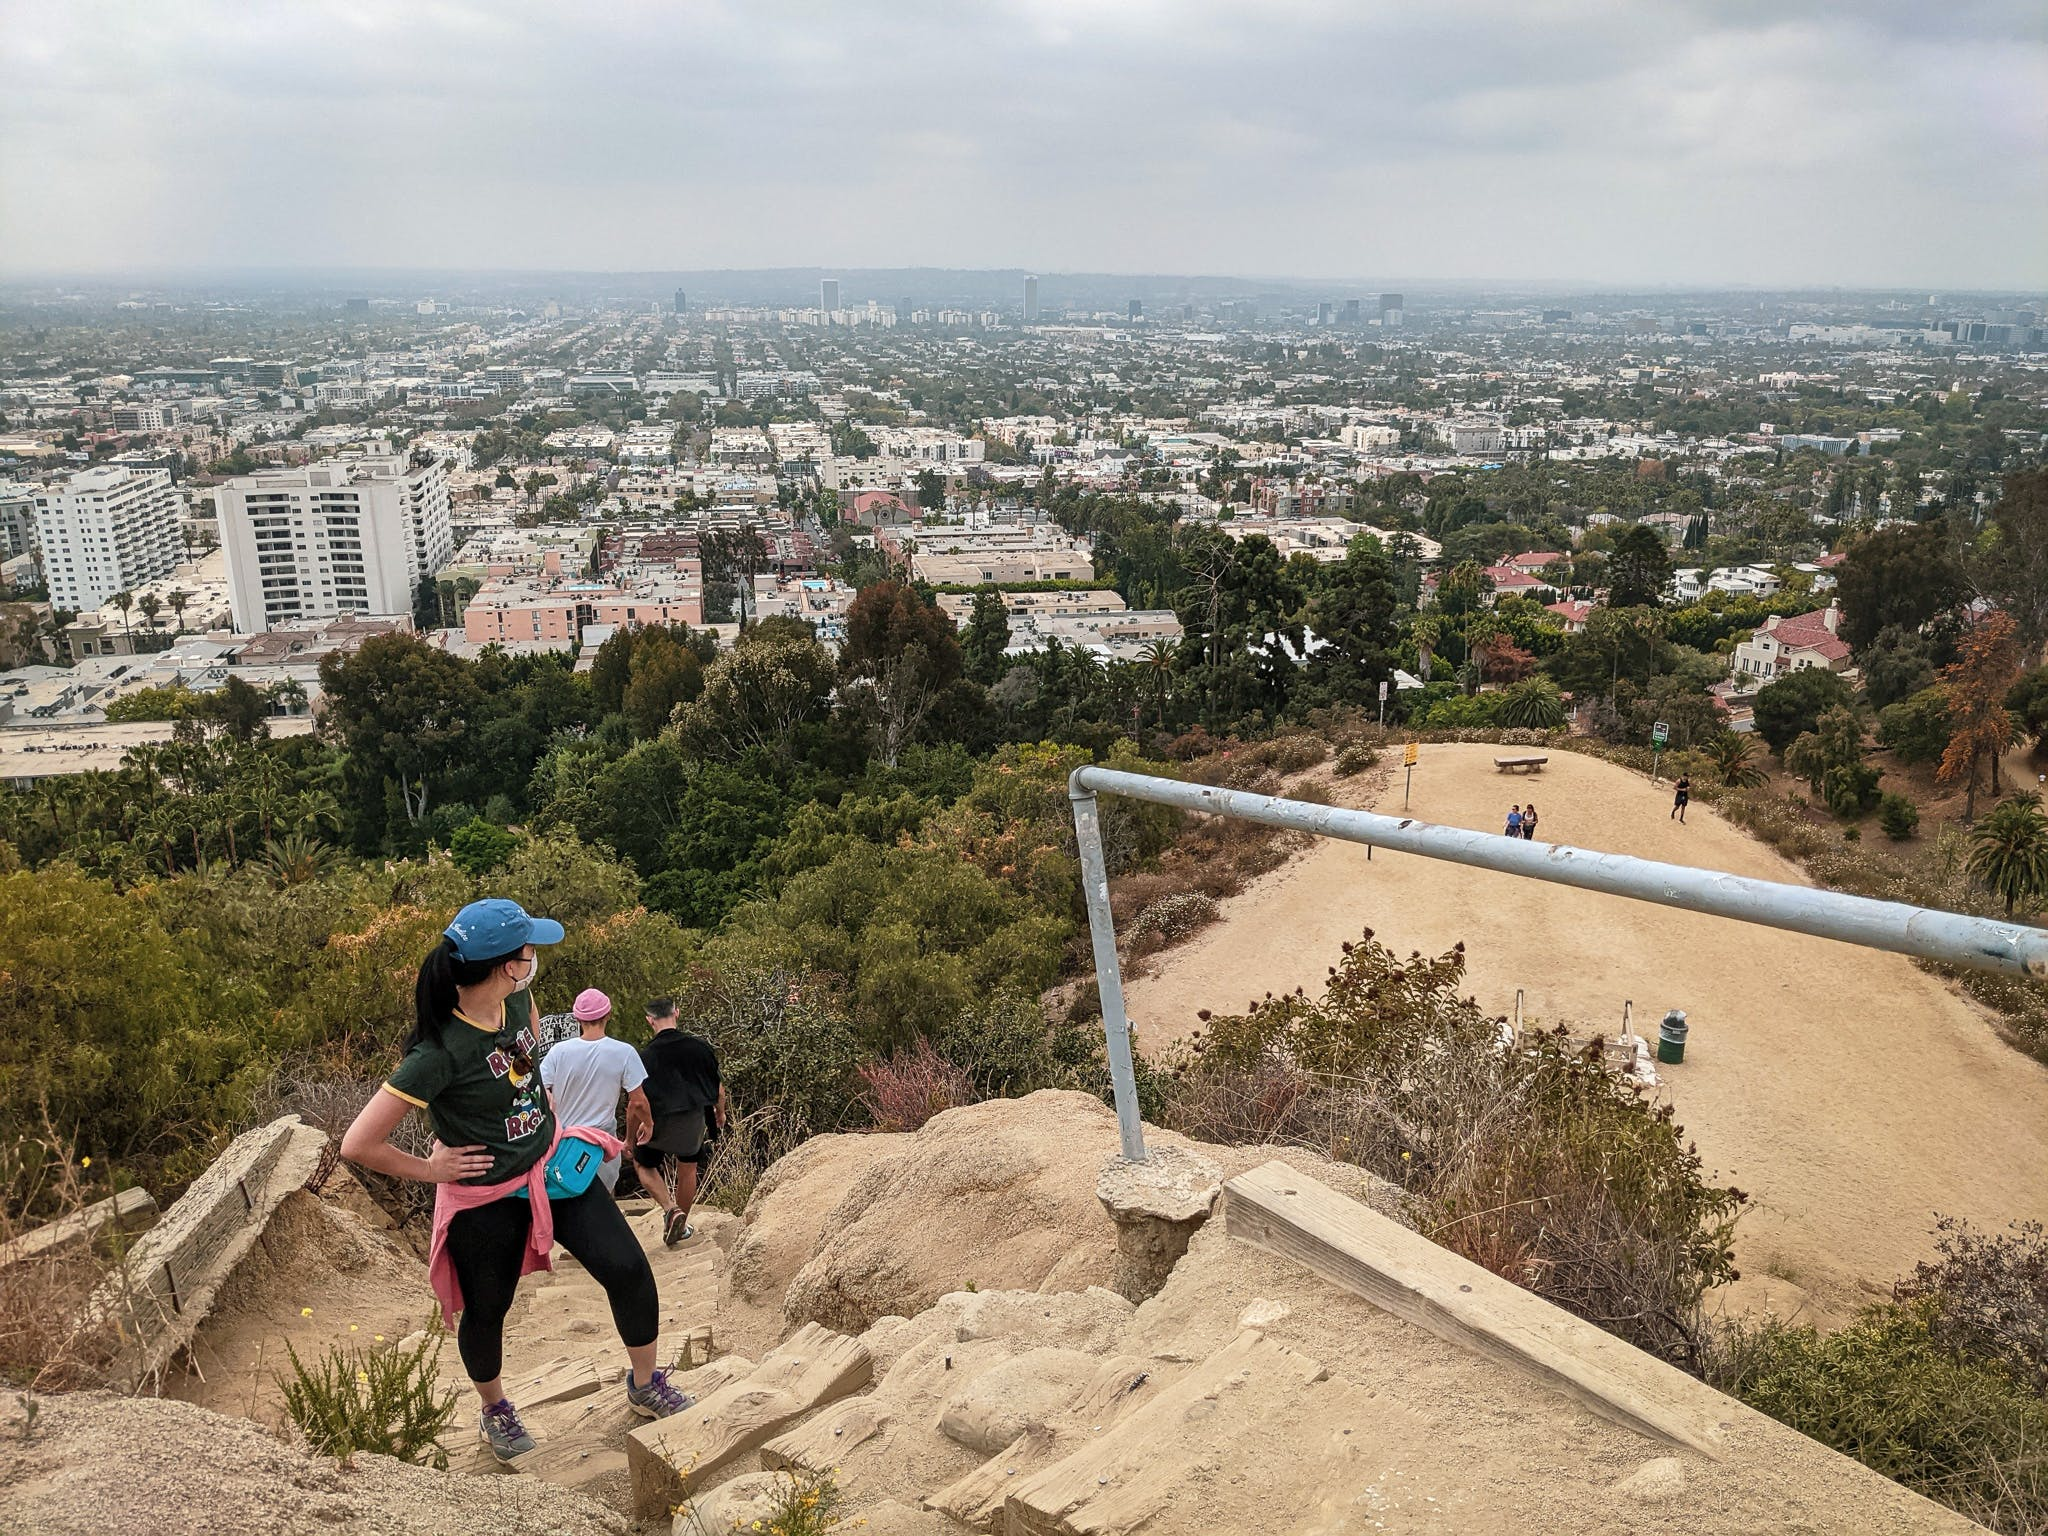 Hiker taking a break on stair steps and looking out to the city view of LA at Runyon Canyon in Los Angeles